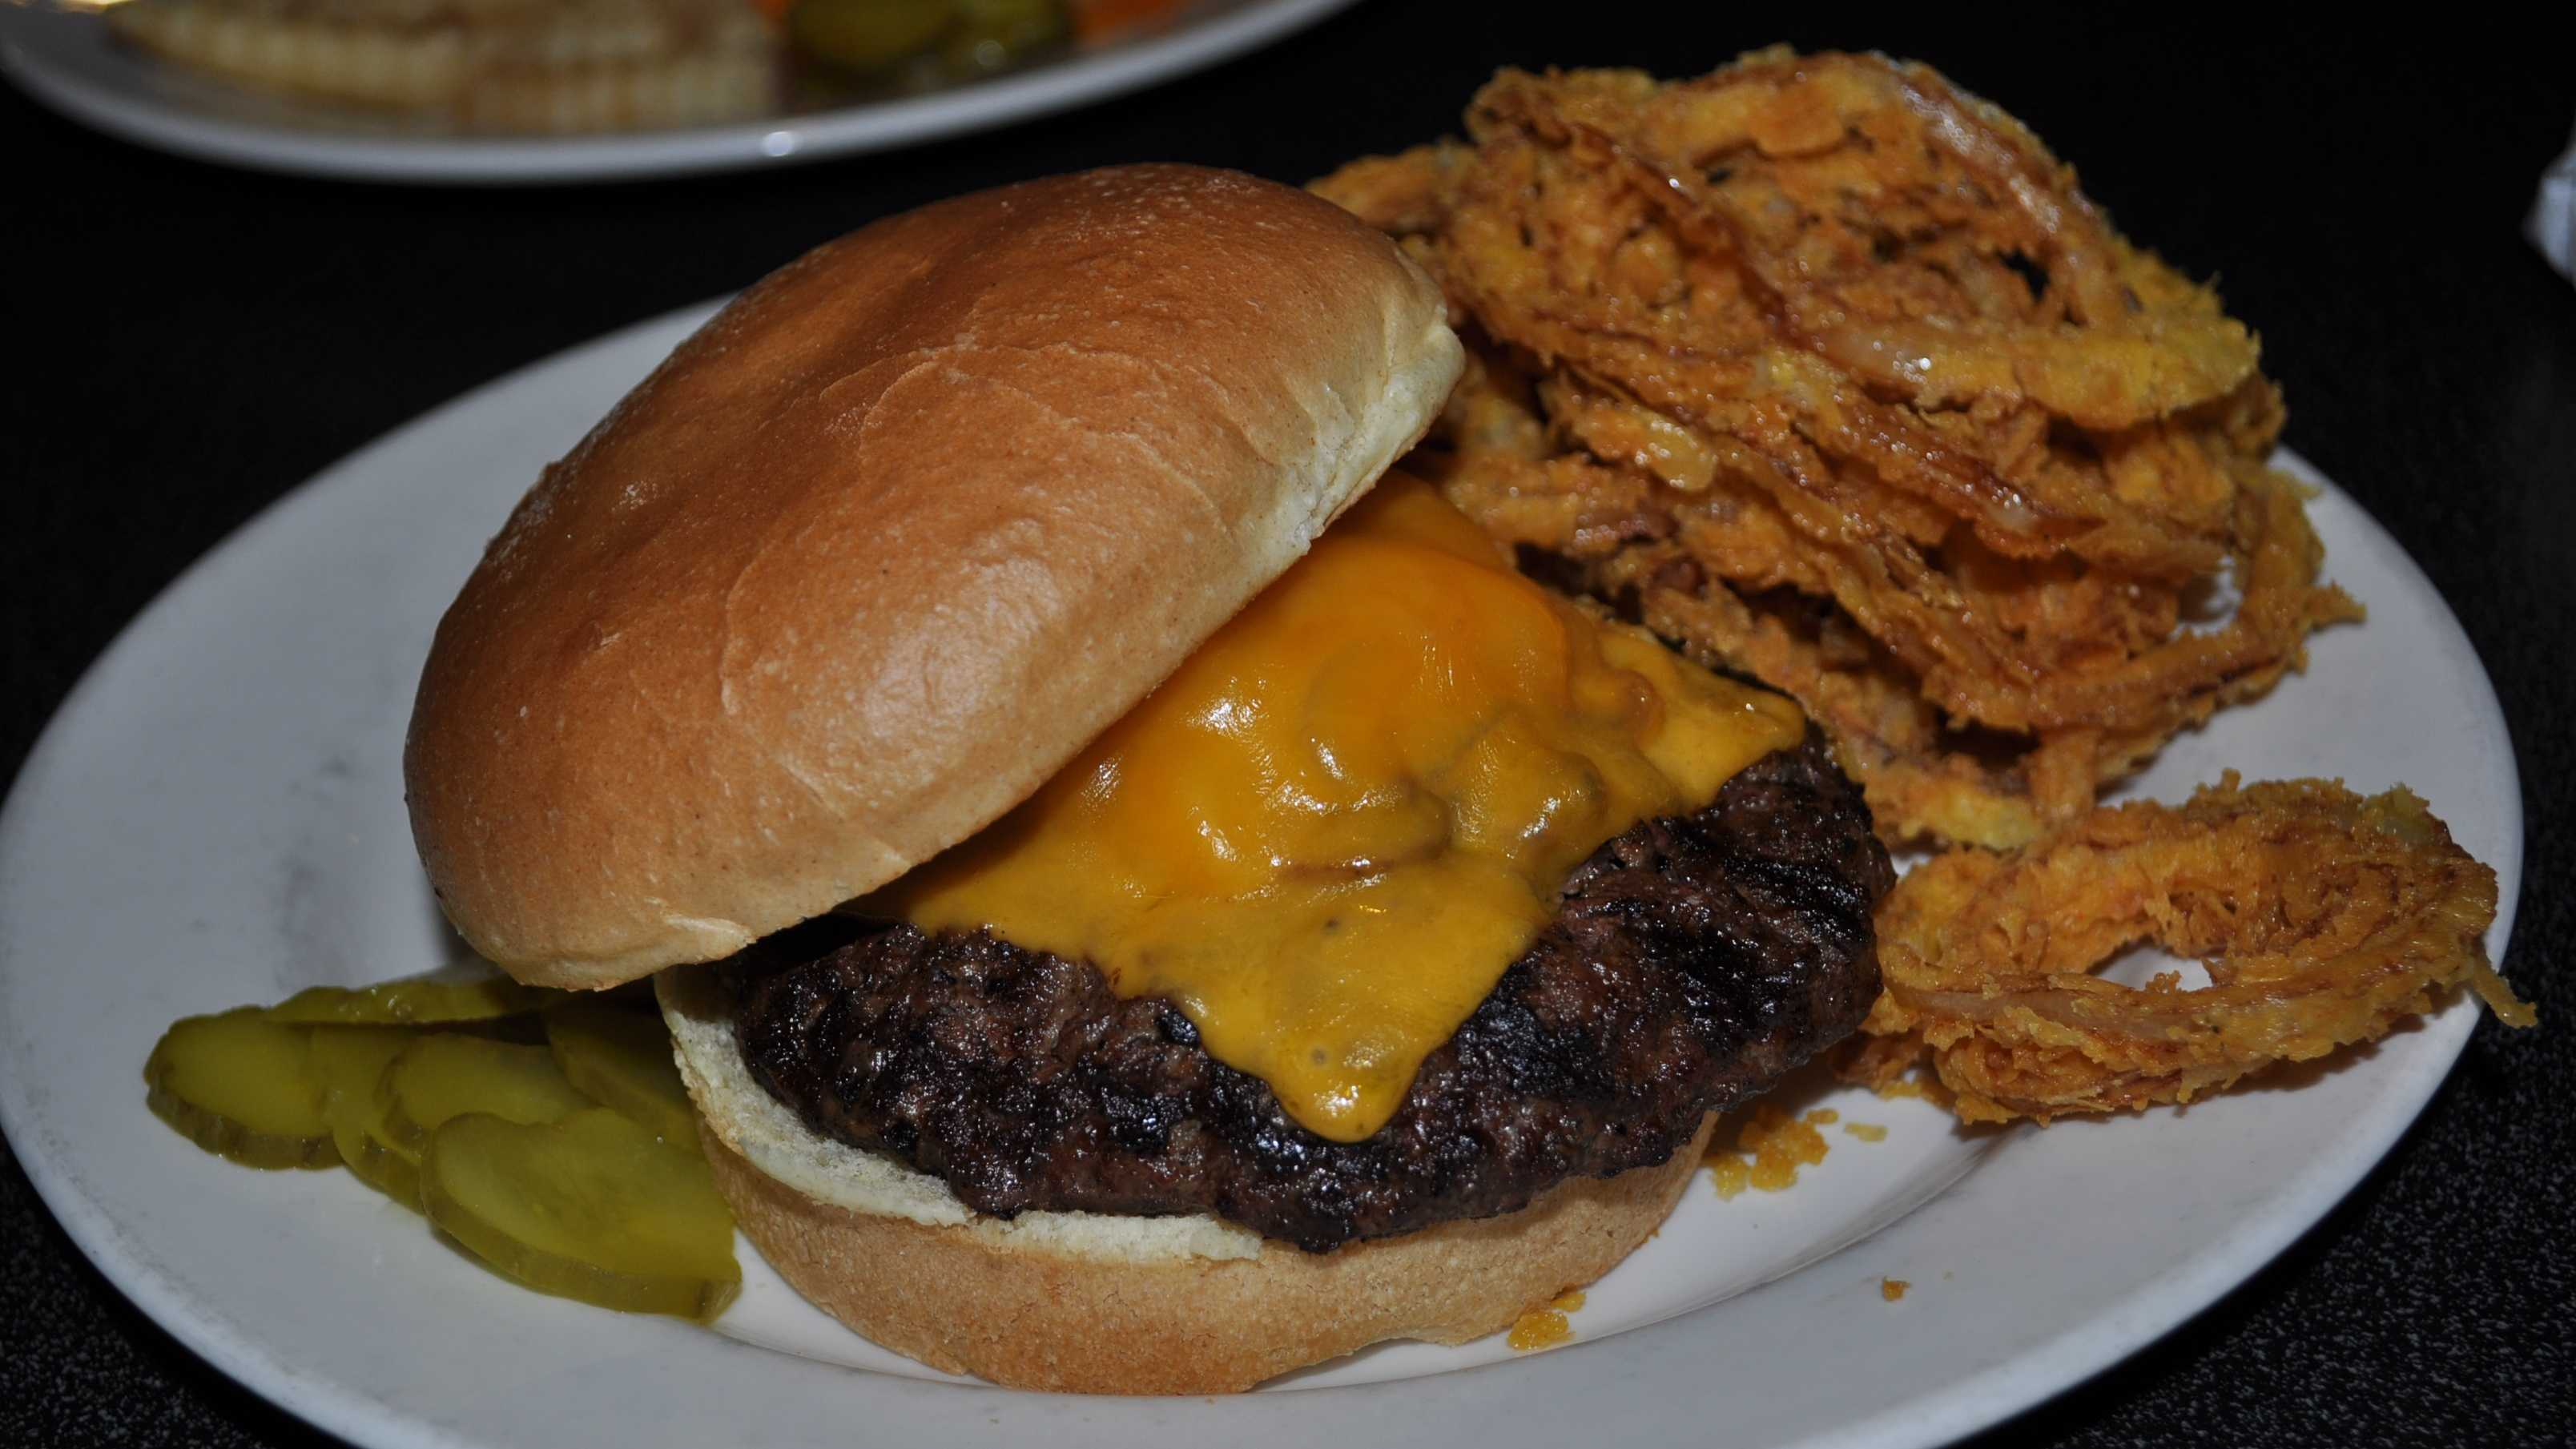 PHOTOS: Iowa's best burgers past contest winners